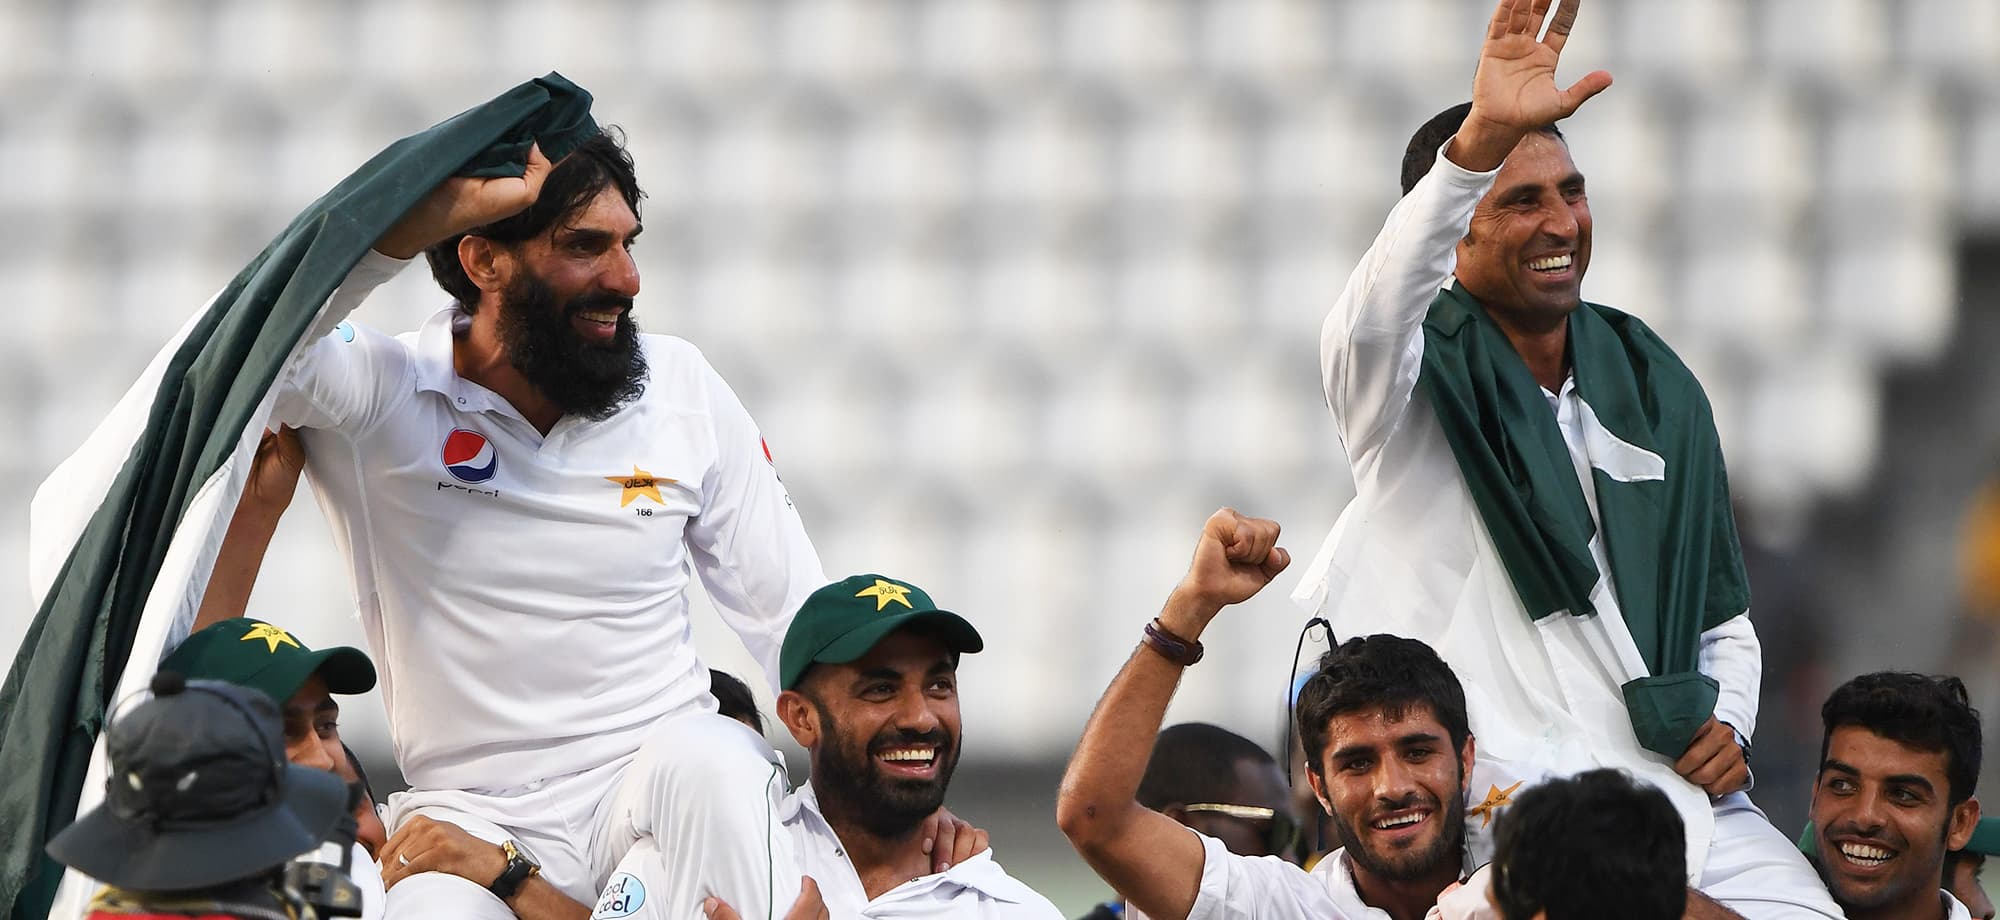 Retiring Pakistan cricket team members captain Misbah-ul-Haq (L) and Younis Khan (R) are carried by teammates as they celebrate after winning the final test match and the series 2-1 against the West Indies at the Windsor Park Stadium in Roseau, Dominica on May 14, 2017. / AFP PHOTO / Mark RALSTON — AFP or licensors